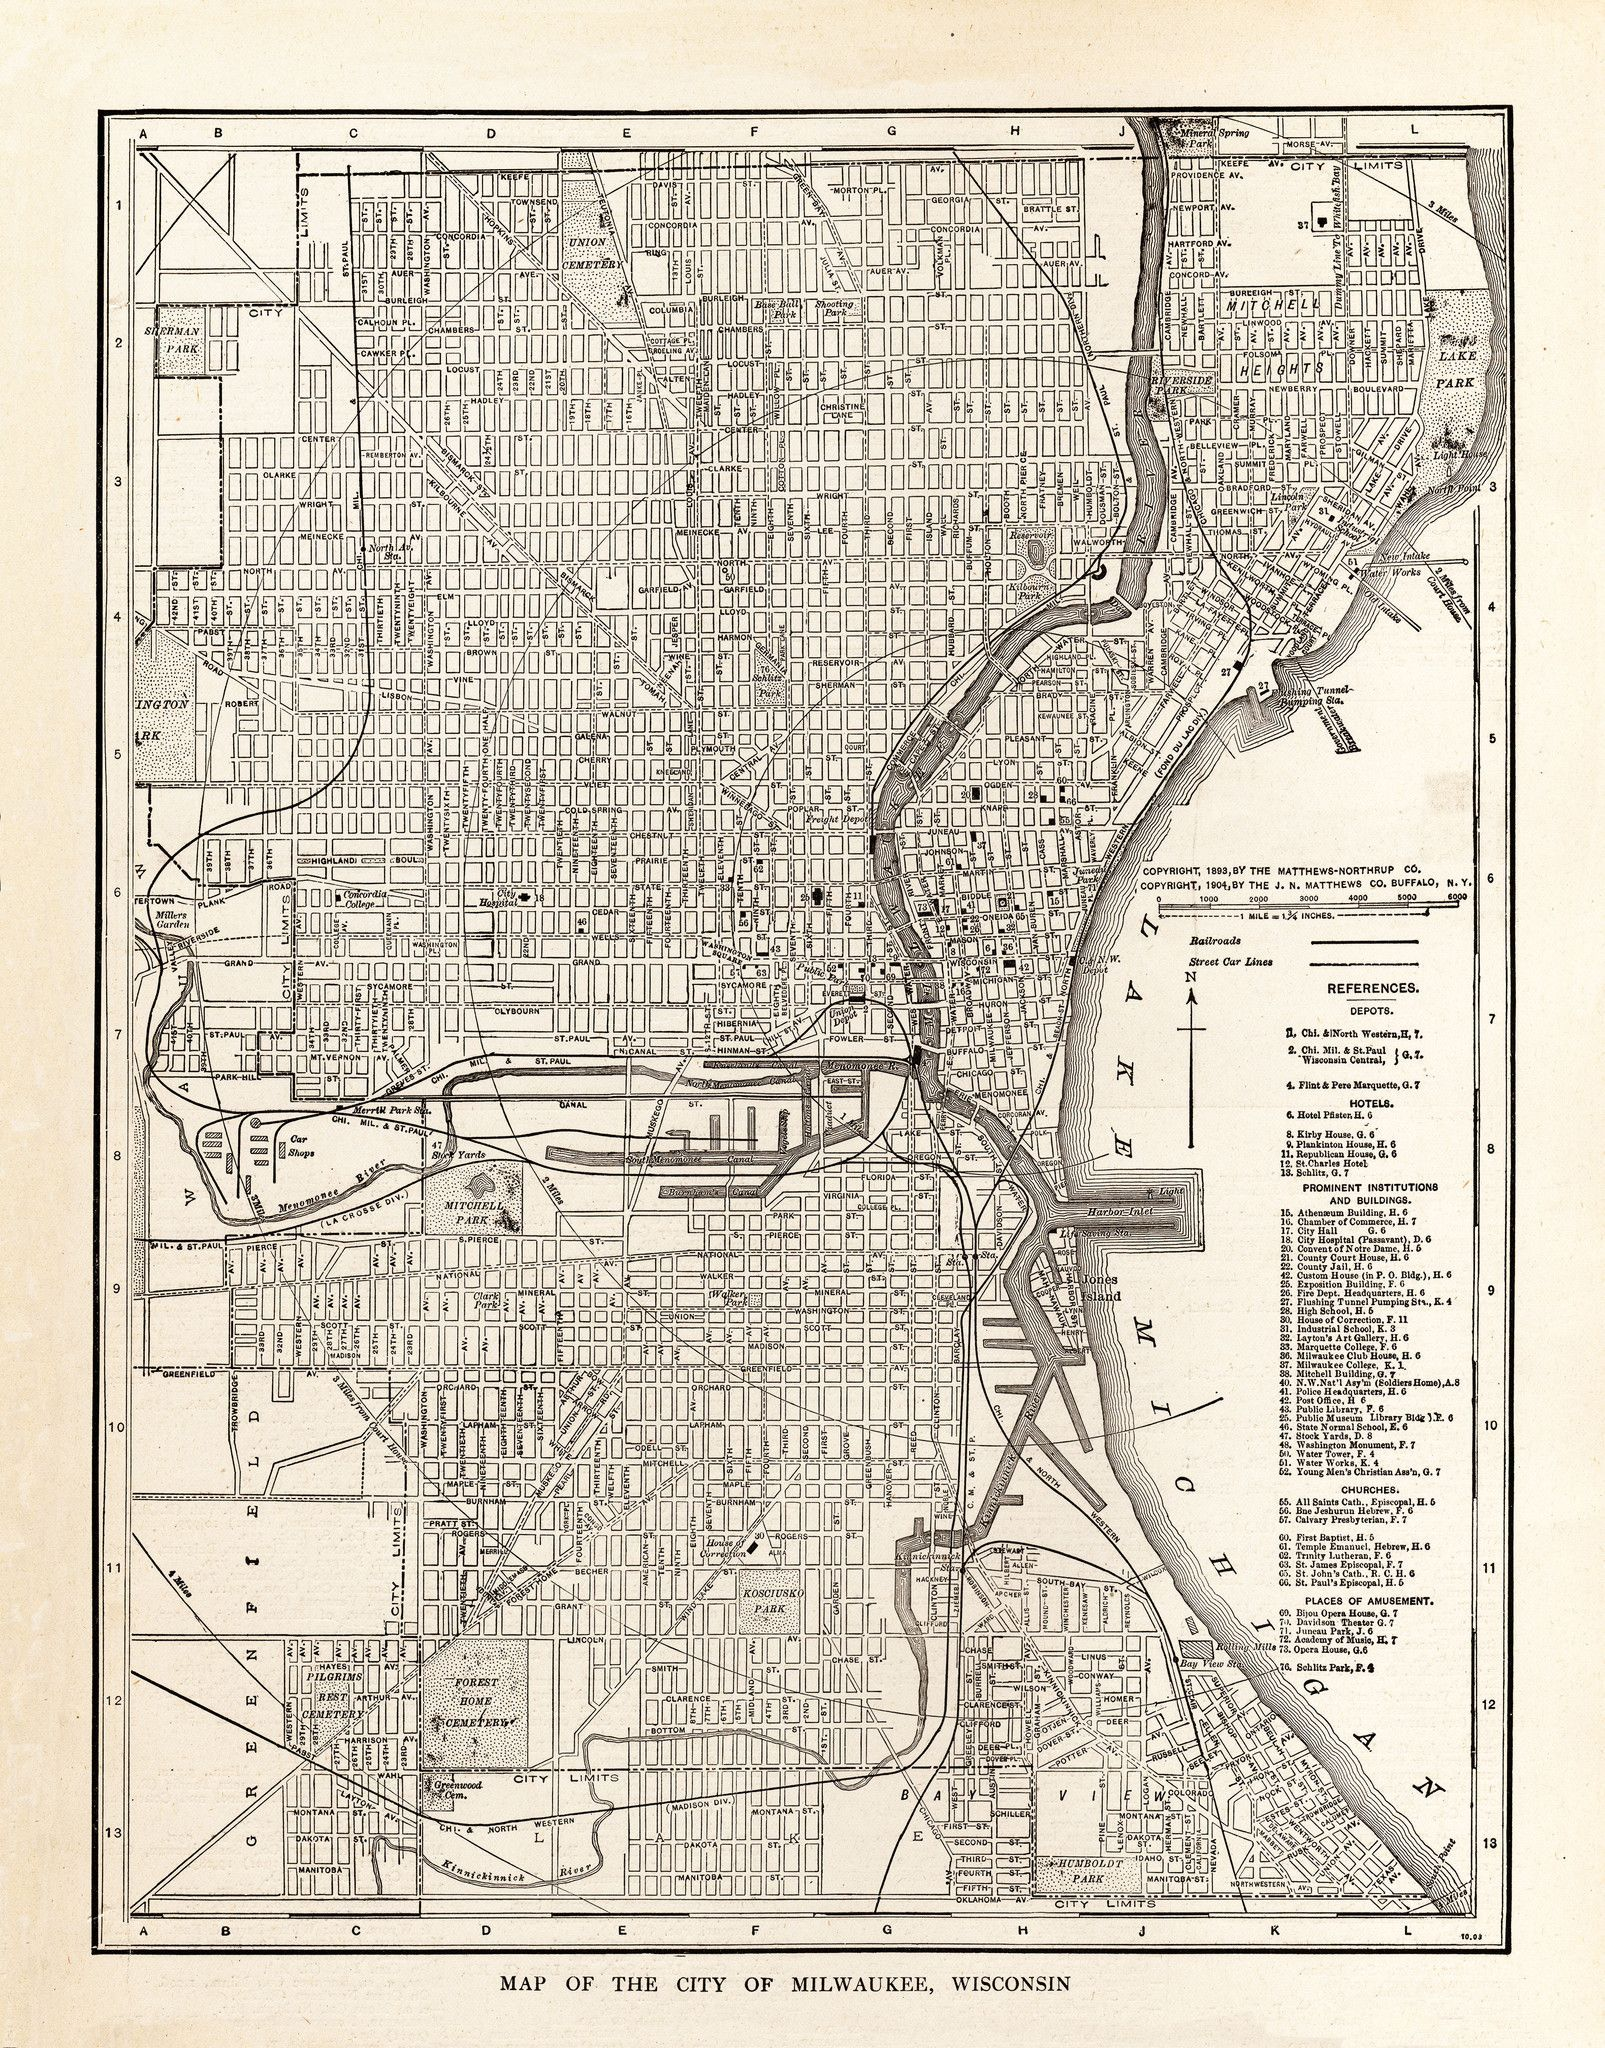 Map of the city of milwaukee wisconsin wisconsin city and north map of the city of milwaukee wisconsin from the new world atlas and gazetteer 1923 we produce all of our on images in shop and we are happy to offer gumiabroncs Images